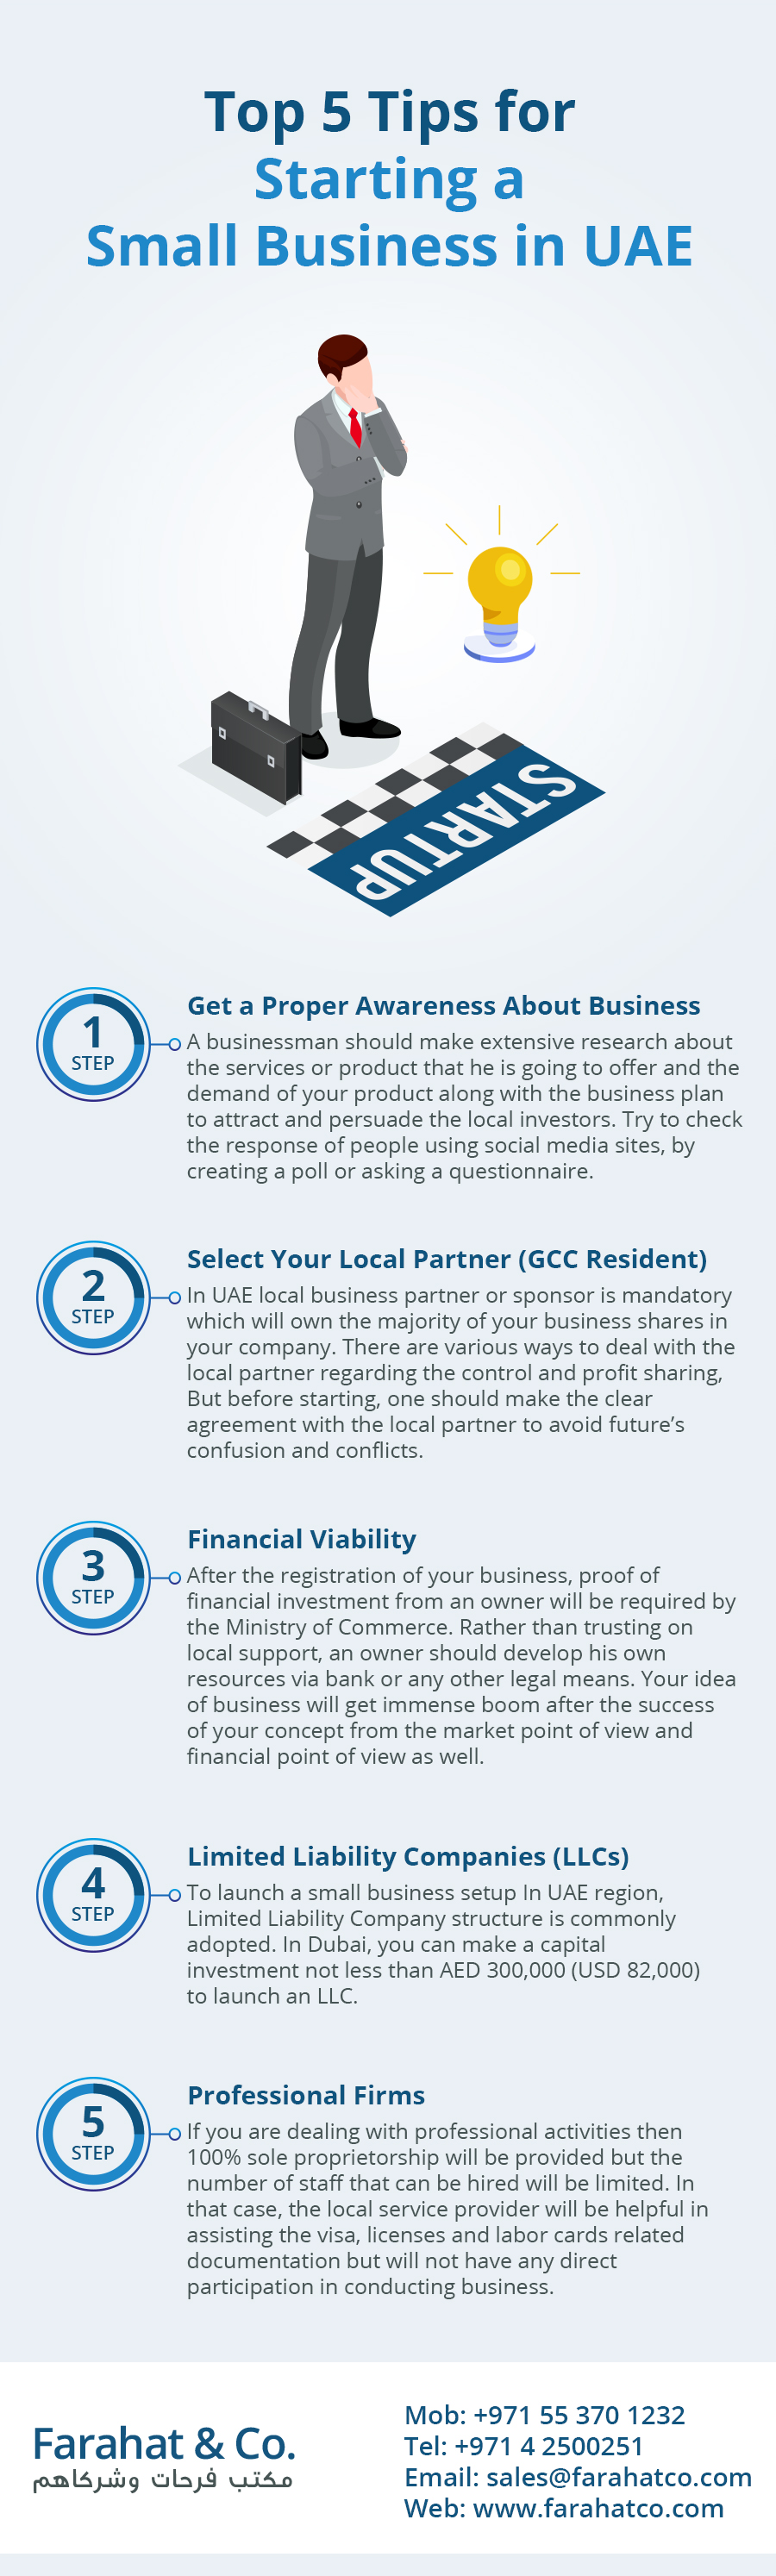 Top Tips for Starting a Small Business in UAE